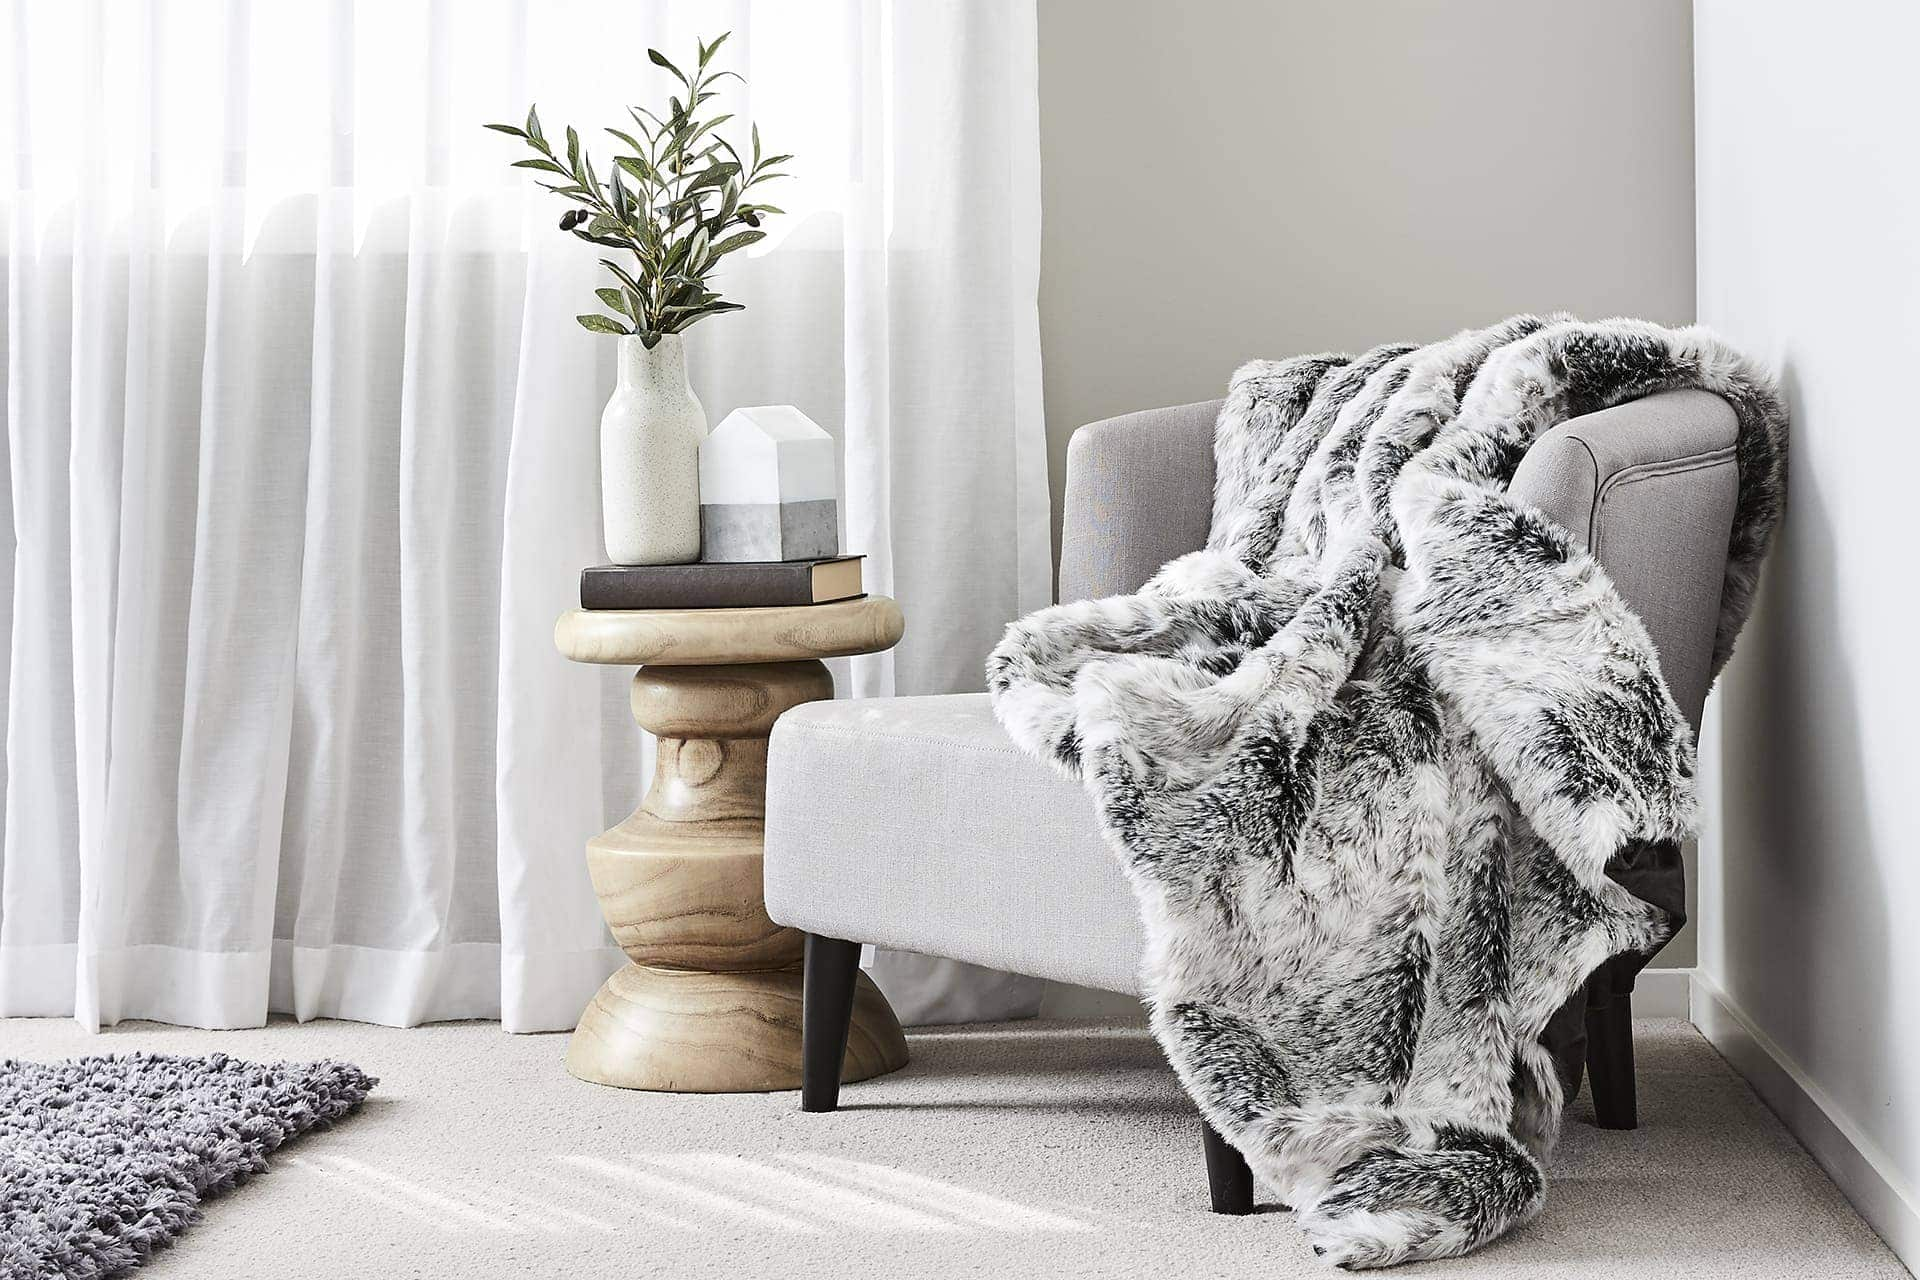 melbourne interior designers tlc interiors grey armchair with faux fur throw